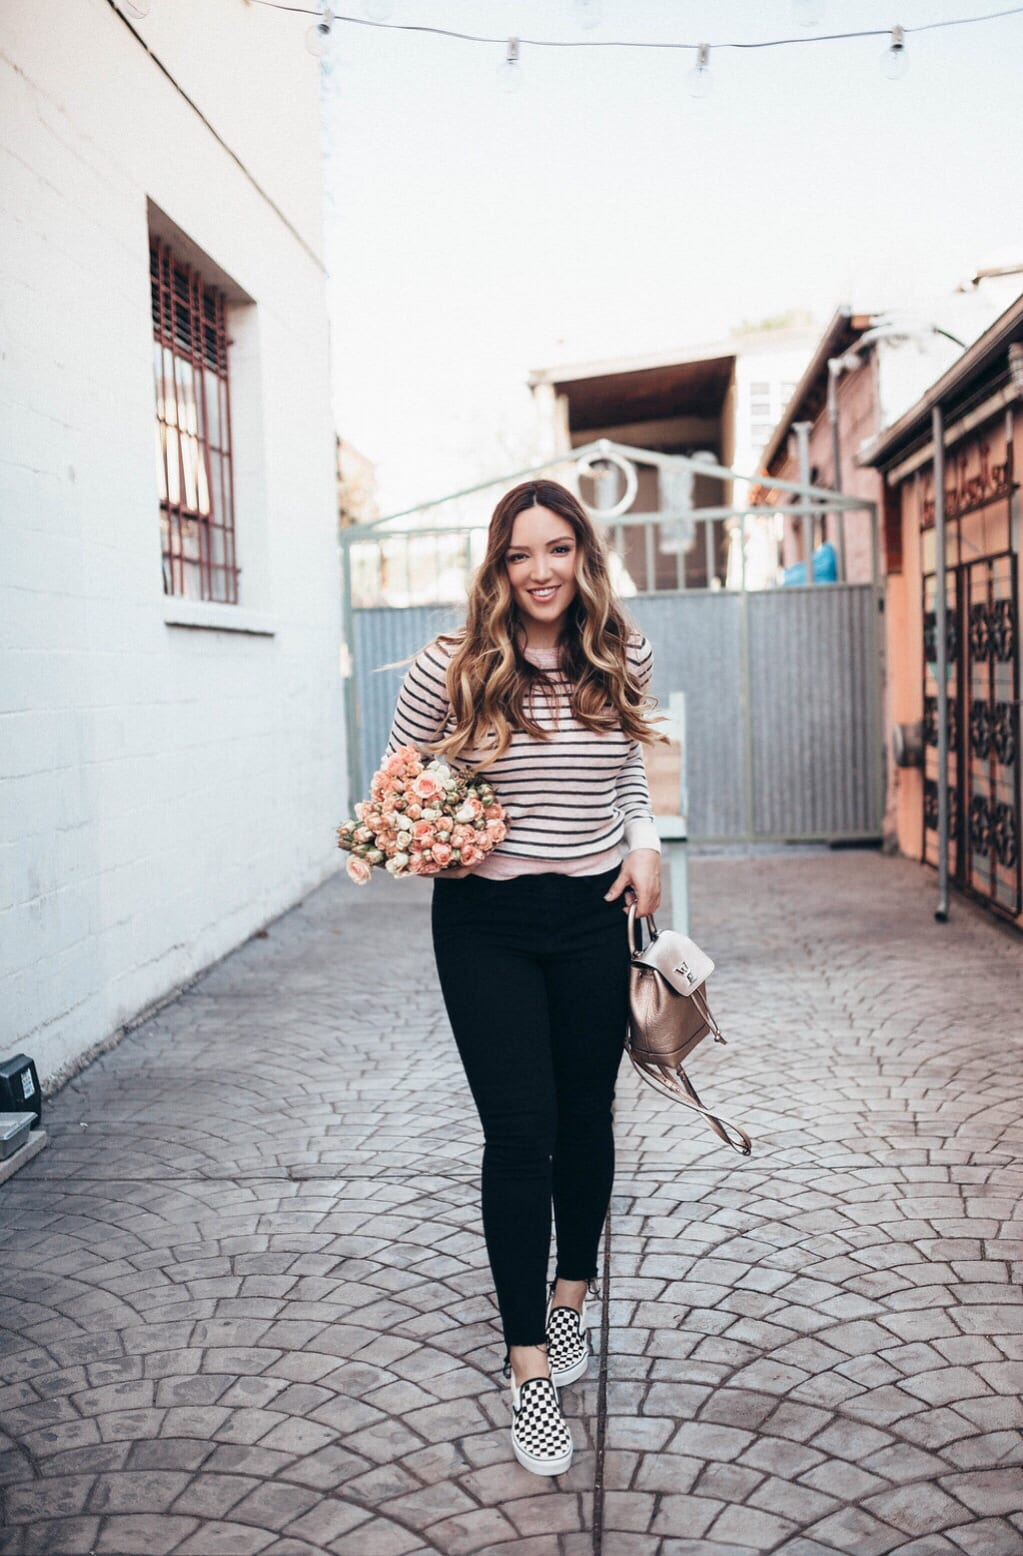 5 Awesome Tips to Find Designer Bags for Cheap on Ebay featured by popular San Francisco style blogger, Just Add Glam